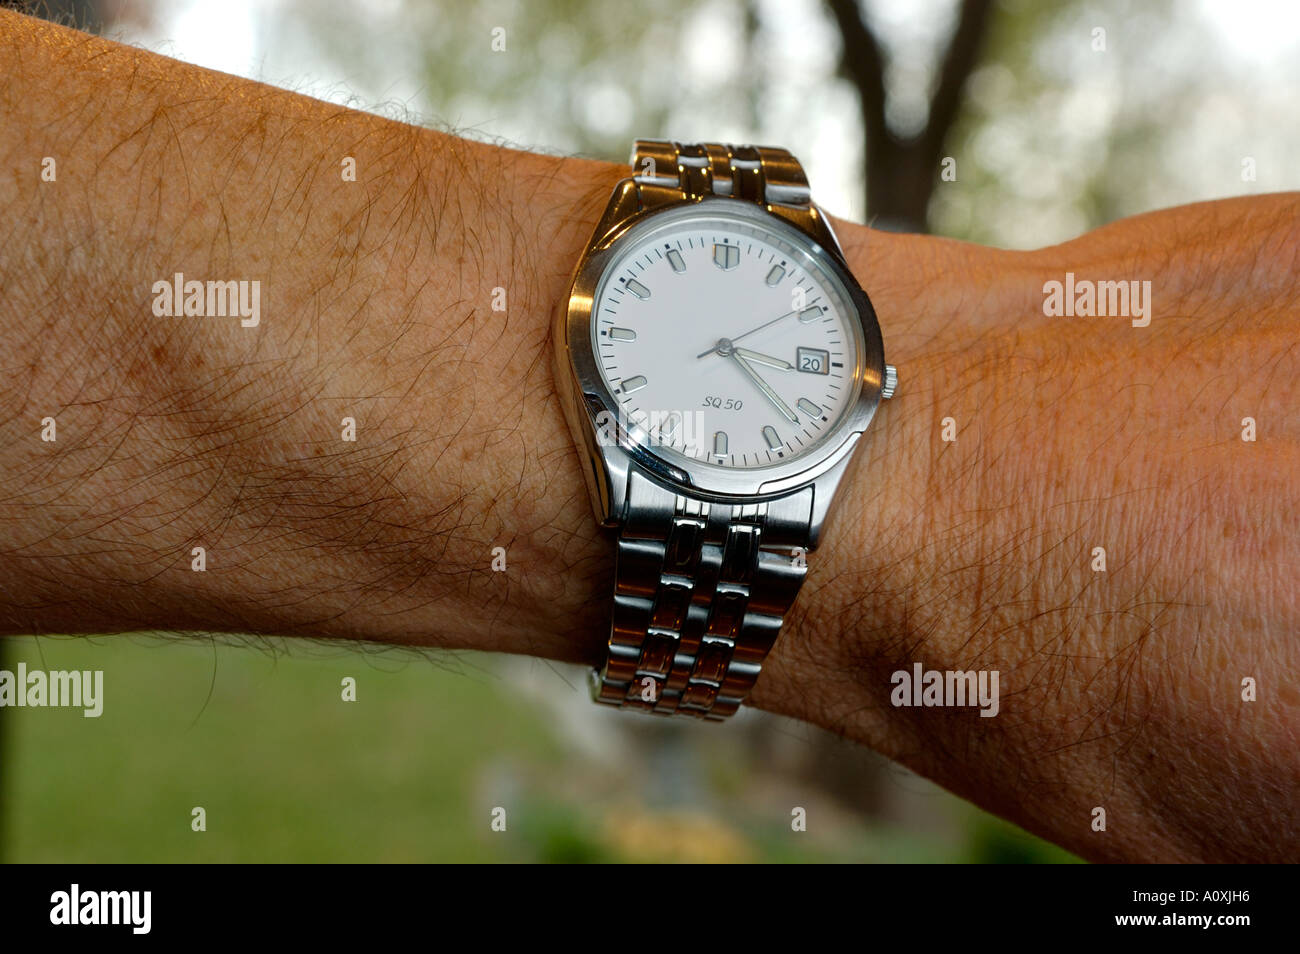 Wrist watch on arm of a man - Stock Image